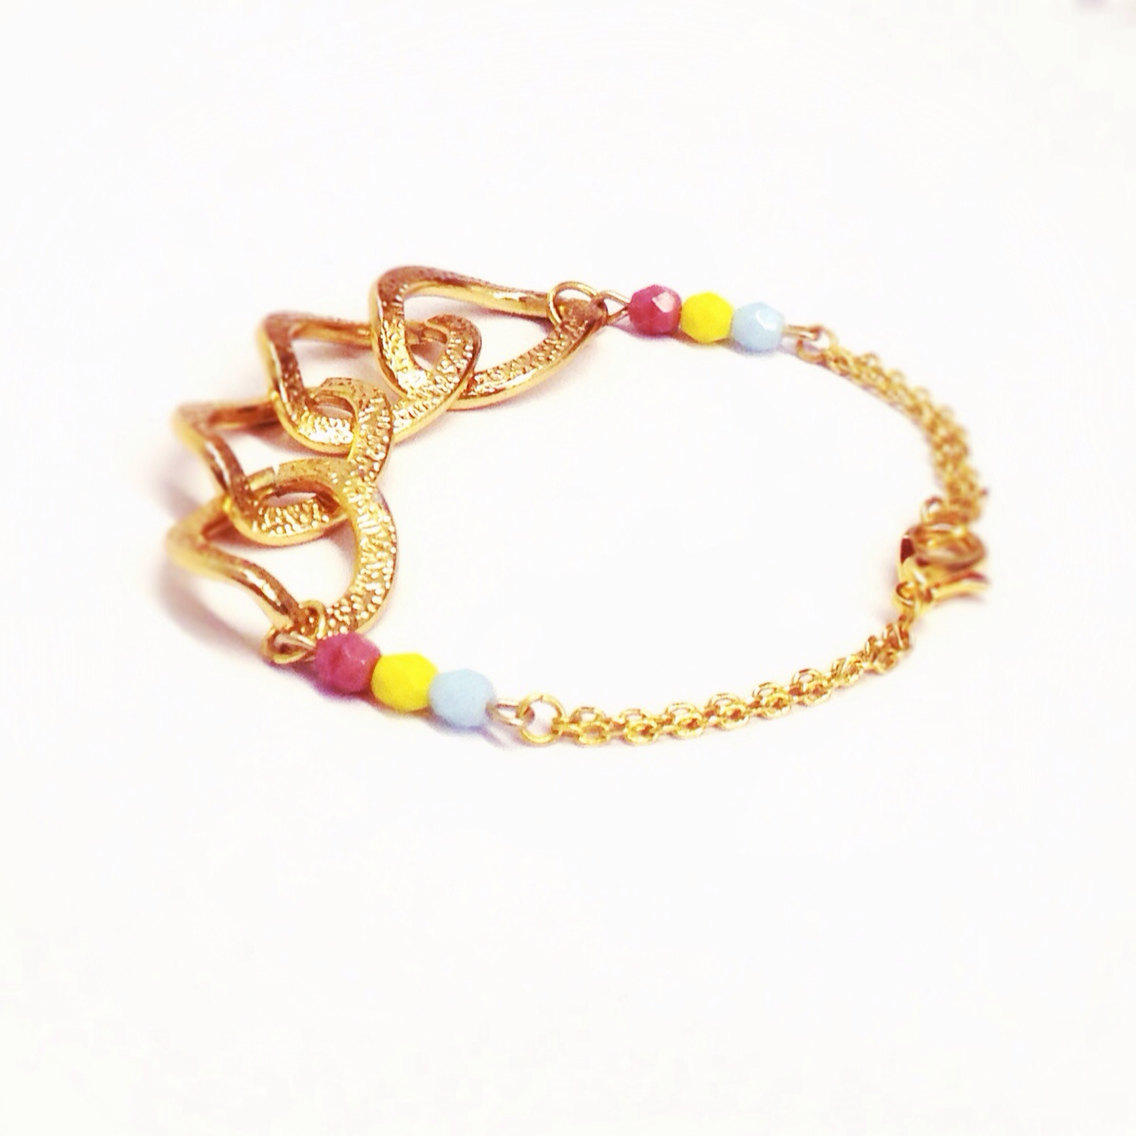 Color bracelet, dainty jewelry